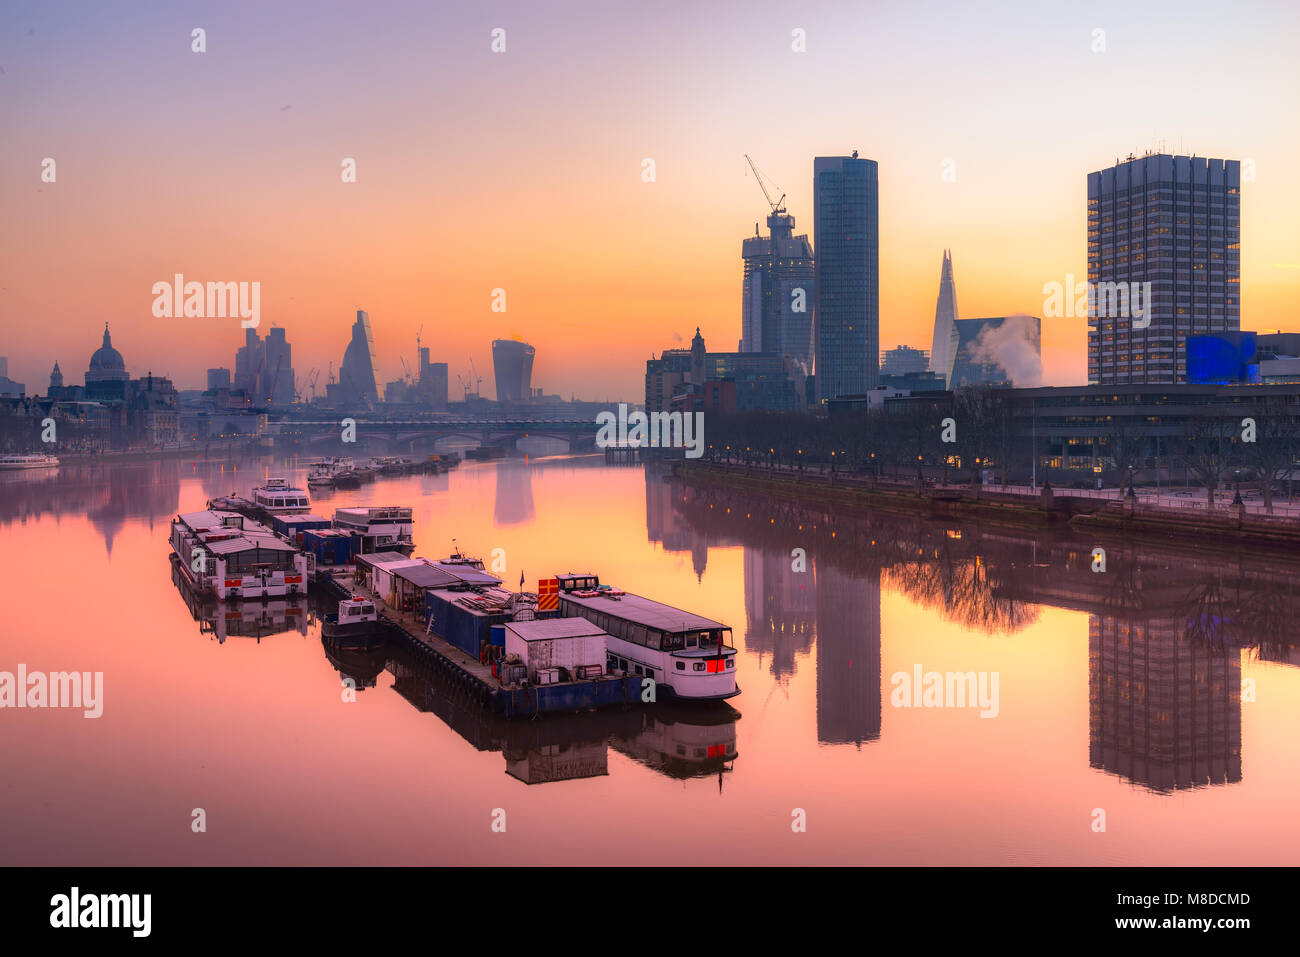 City of London skyline at sunrise with St. Paul basilica and modern skyscarpers, London, UK - Stock Image